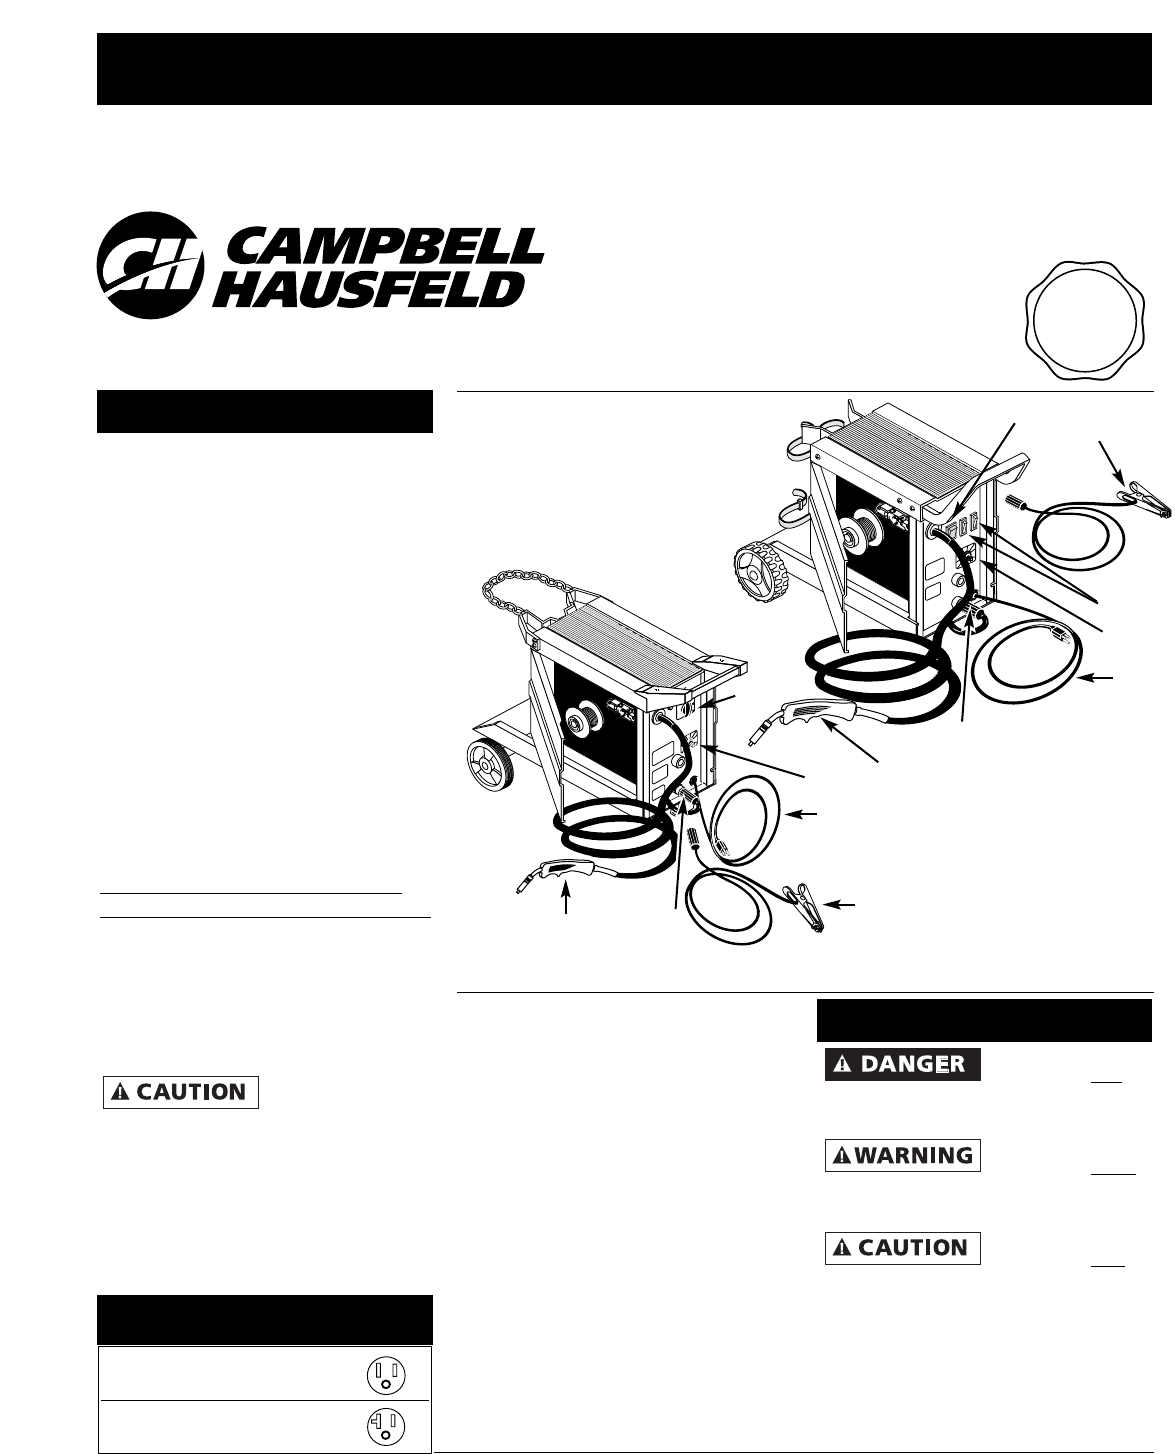 Campbell Hausfeld Microcassette Recorder WG3000 User Guide